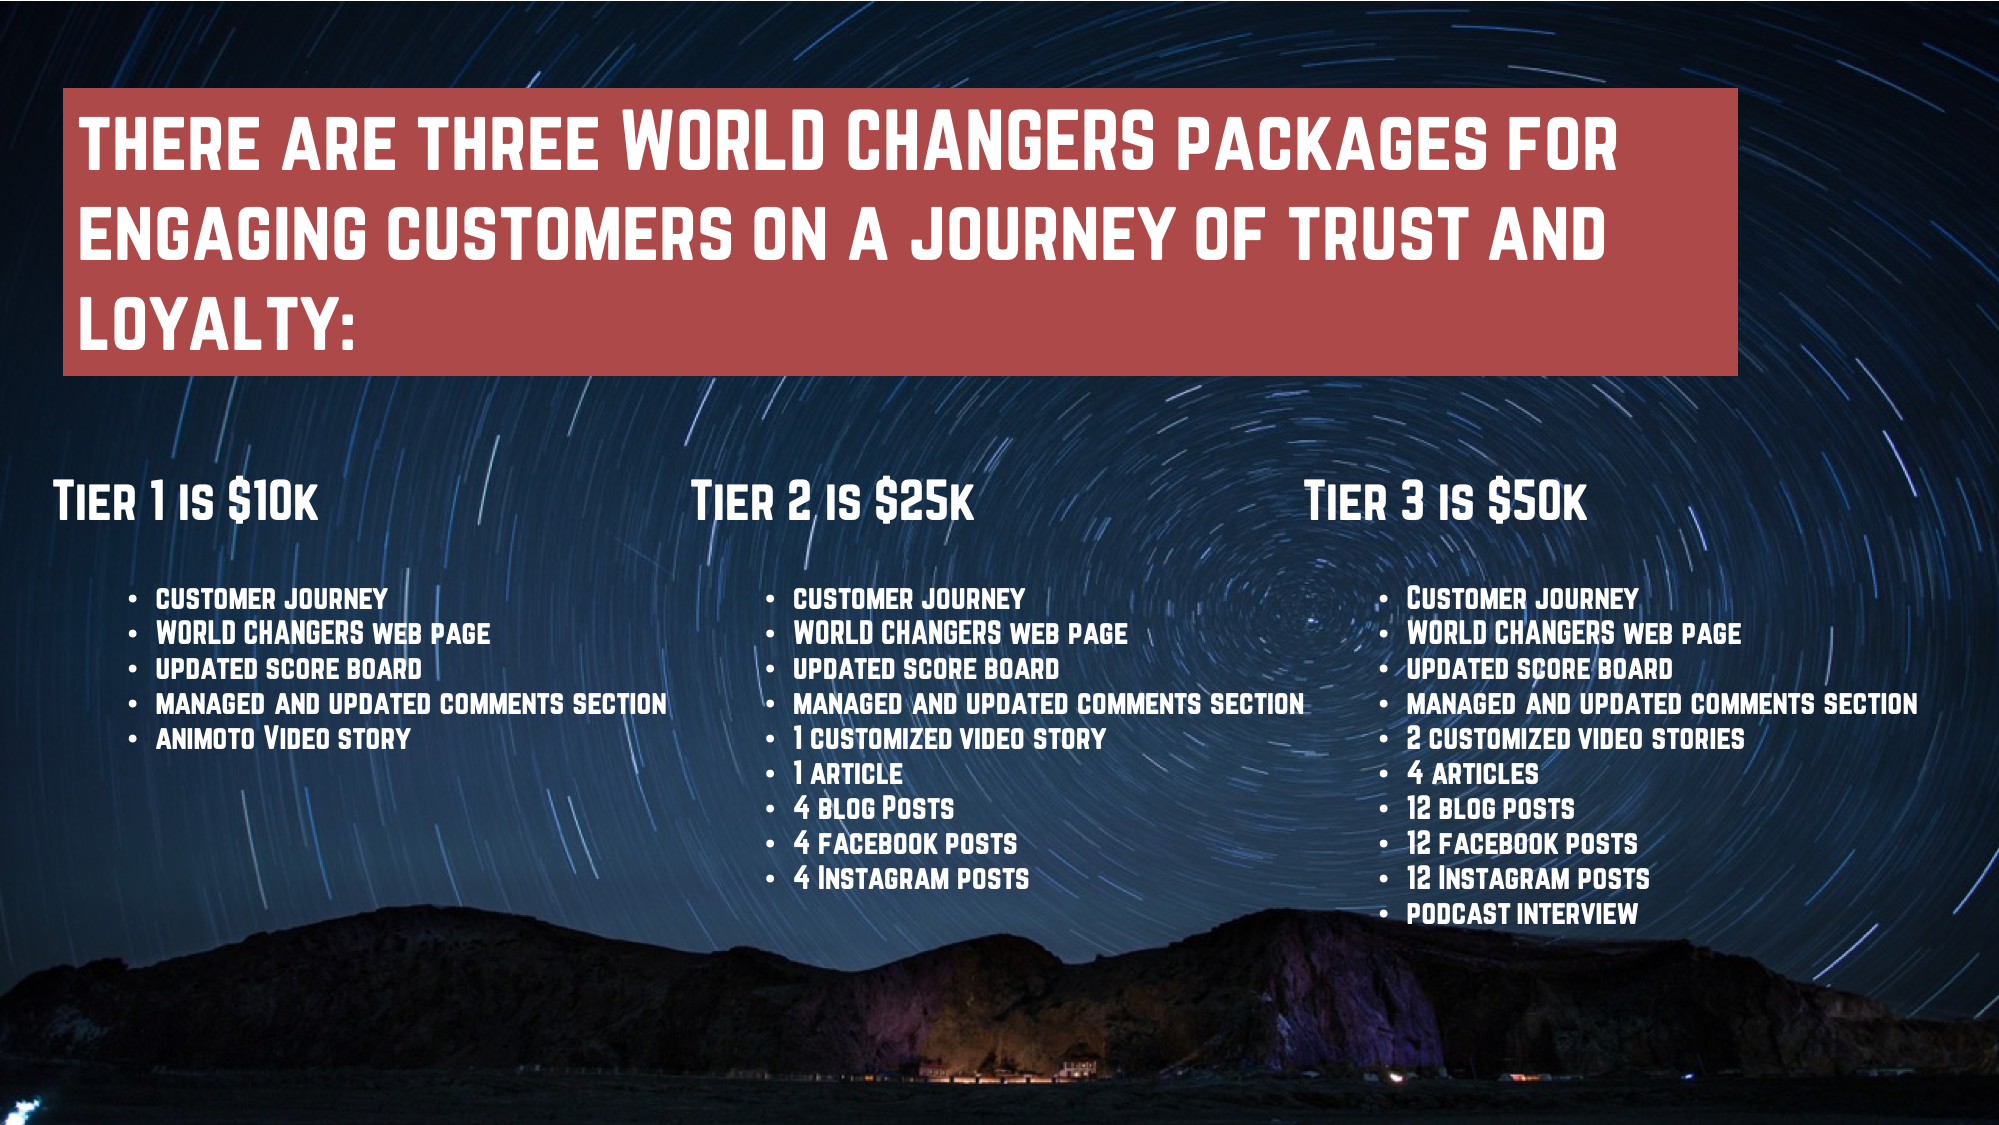 World Changers Packages